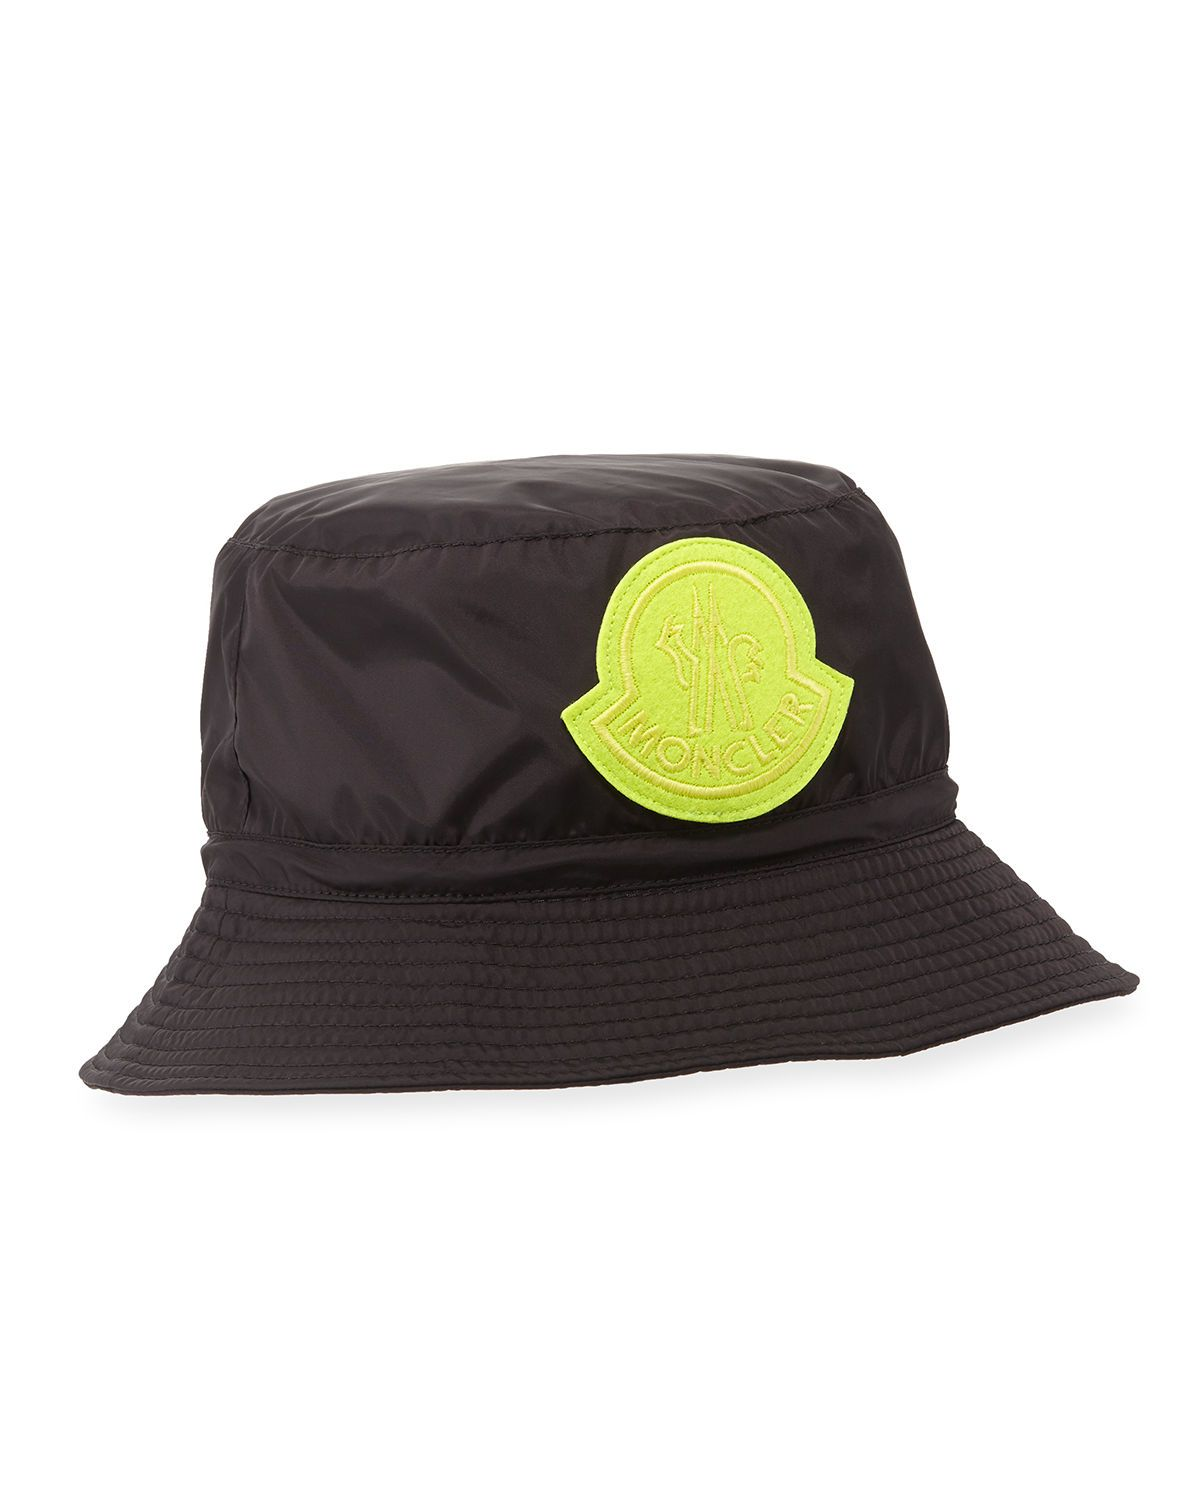 MONCLER MEN S BERRETTO BUCKET HAT.  moncler  6b1800cb752